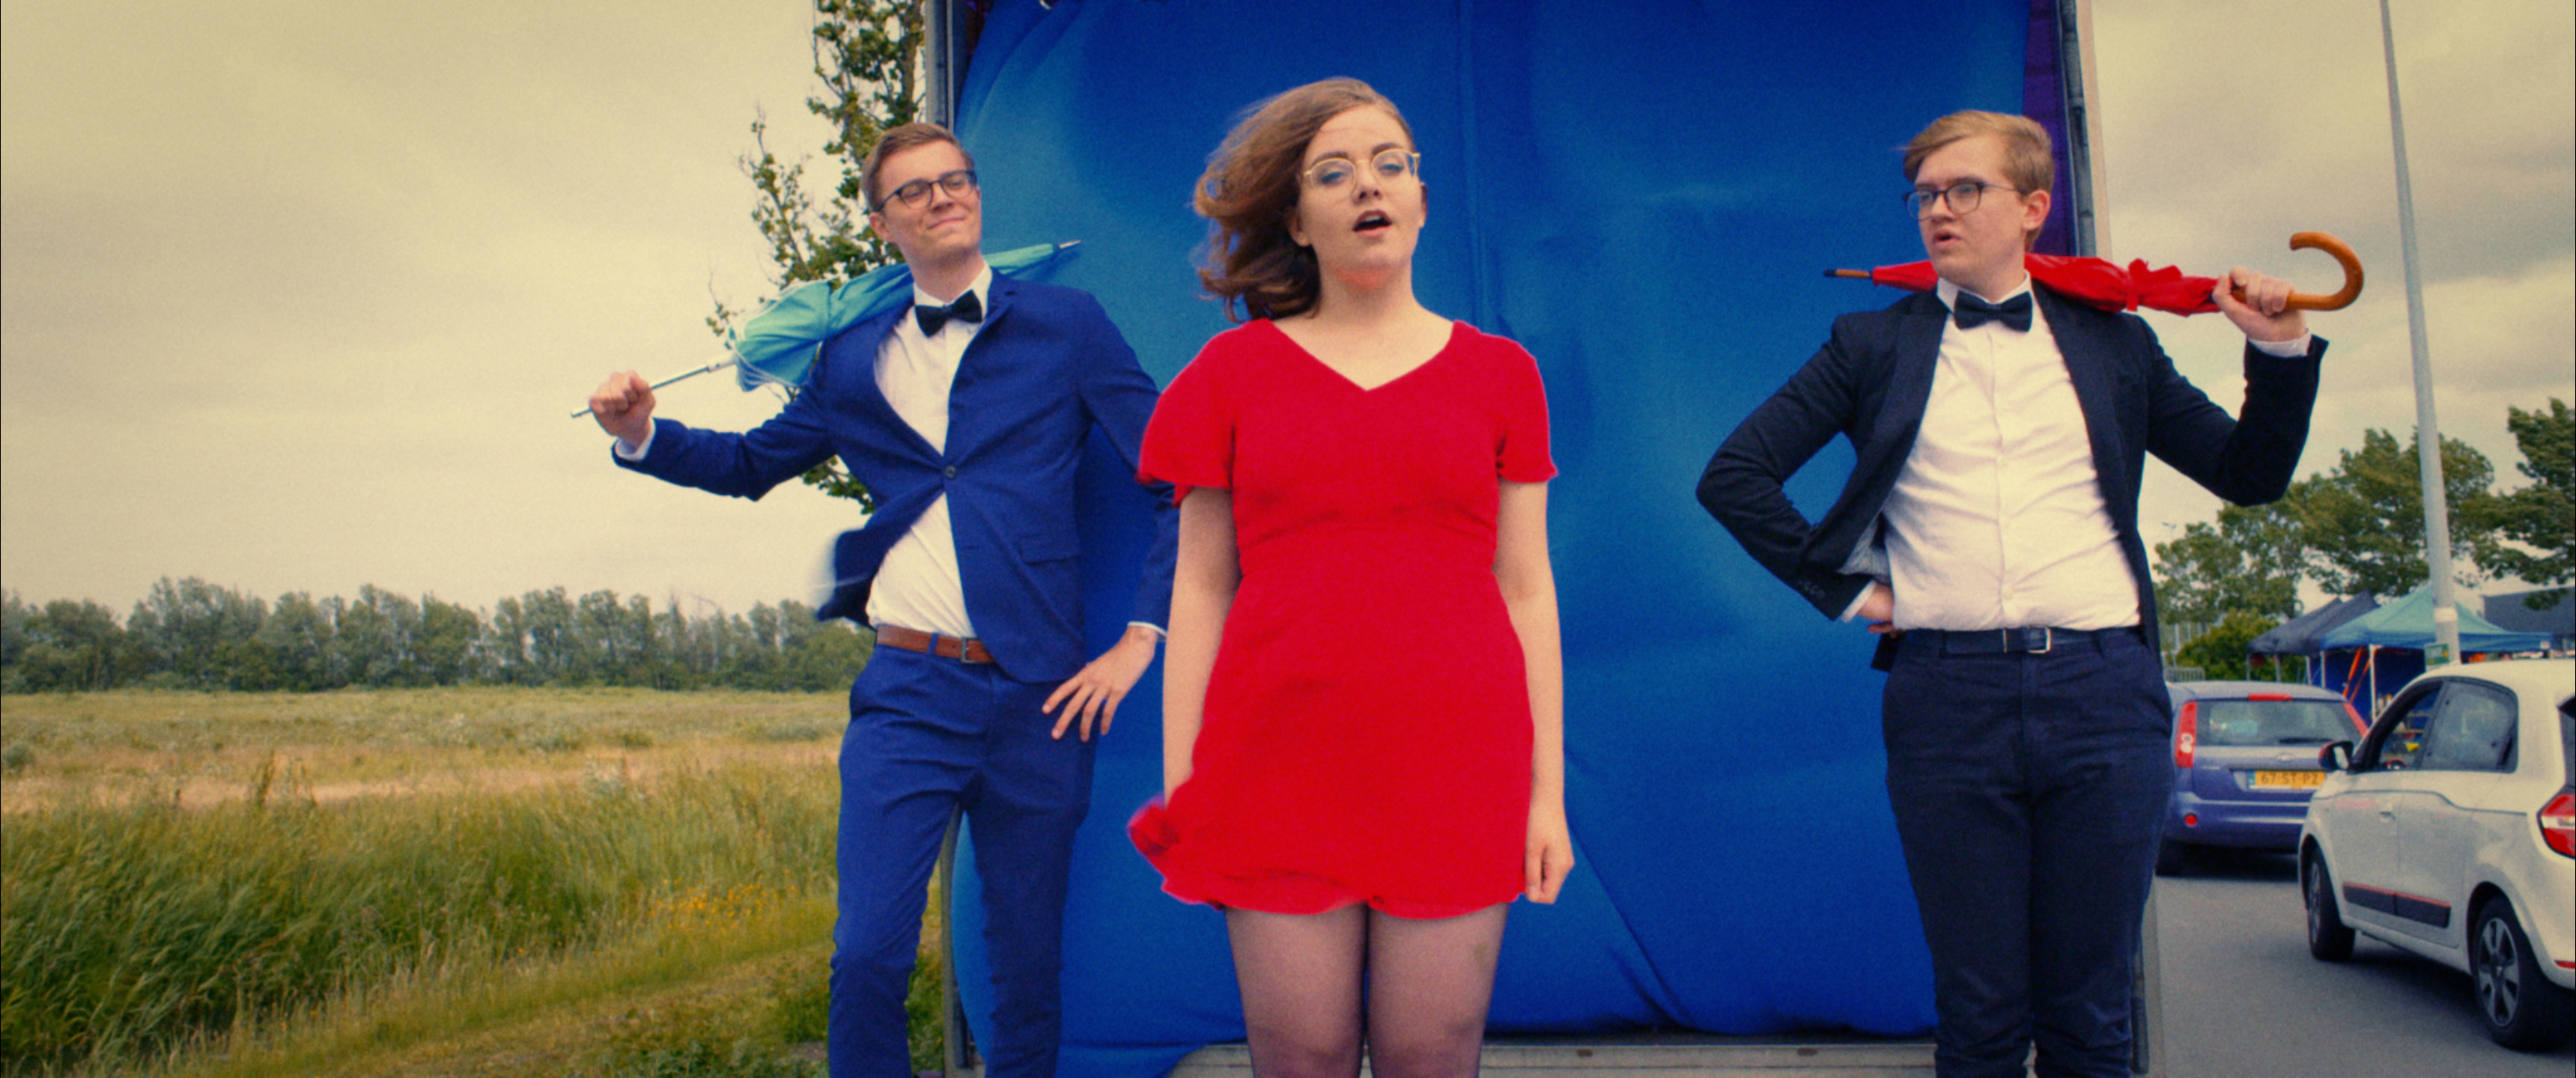 Still from the promo film Nieuwe Dag Op Set. Three people are standing on the loading deck of a truck. They are wearing fancy clothes. The girl in the front, me, is singing and the two boys besides her are holding umbrellas.